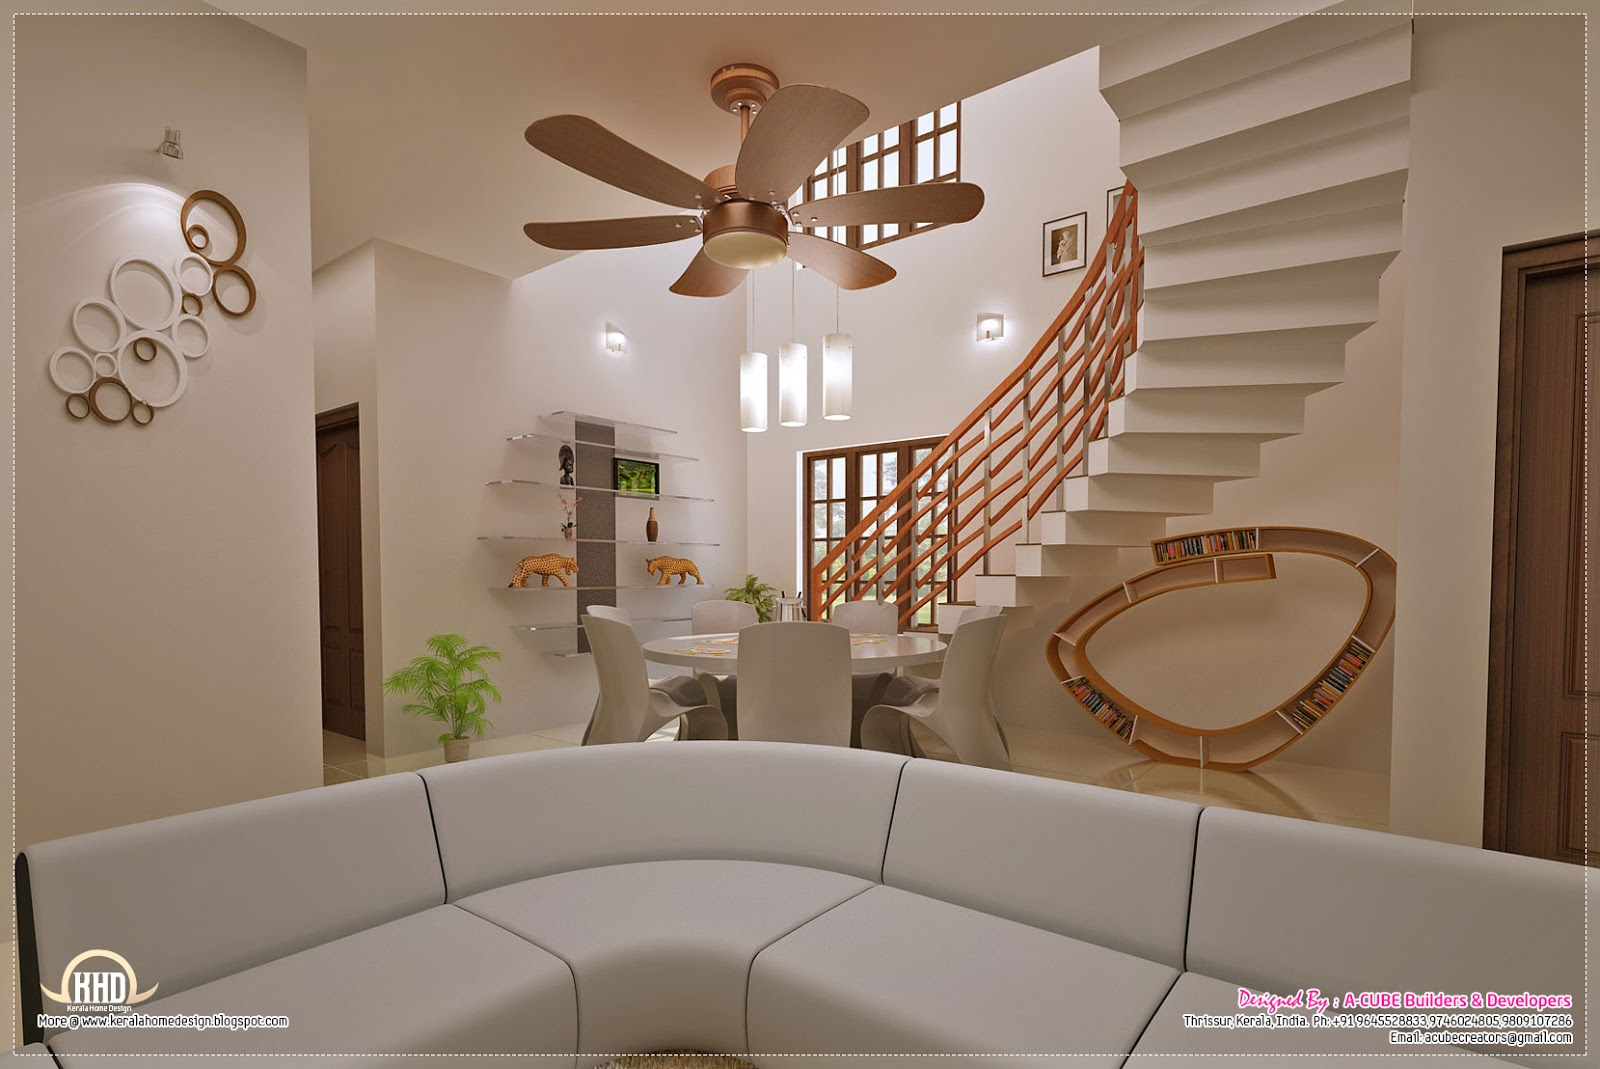 Awesome interior decoration ideas | Home Kerala Plans